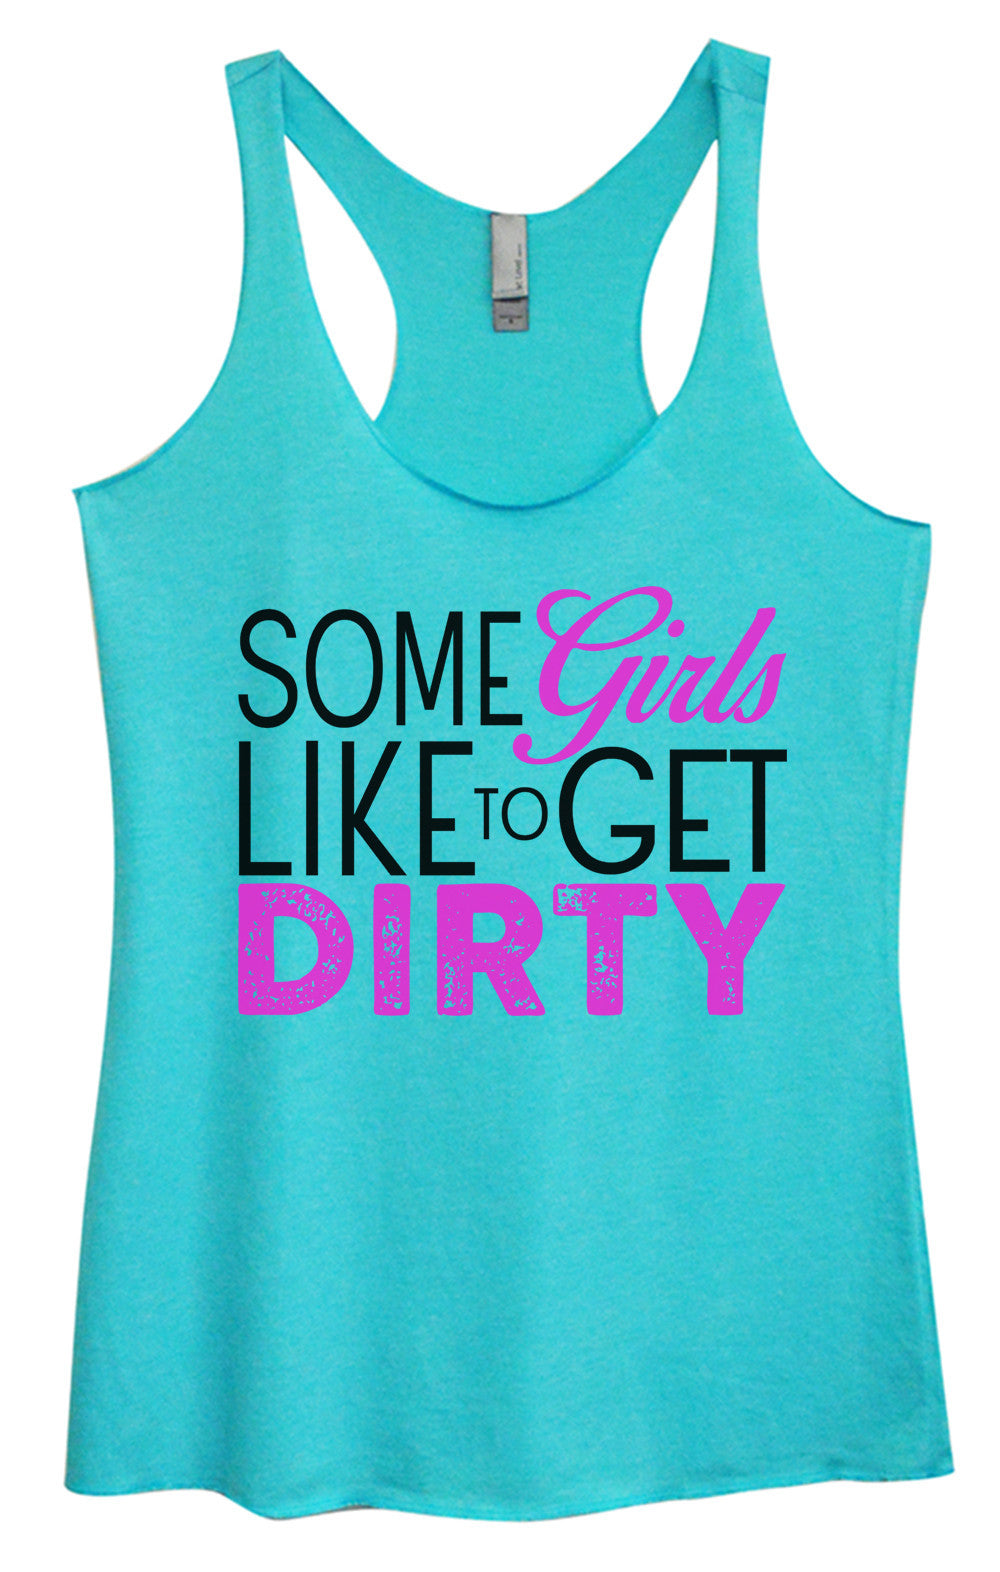 Womens Fashion Triblend Tank Top - Some Girls Like To Get Dirty - Tri-971 - Funny Shirts Tank Tops Burnouts and Triblends  - 3